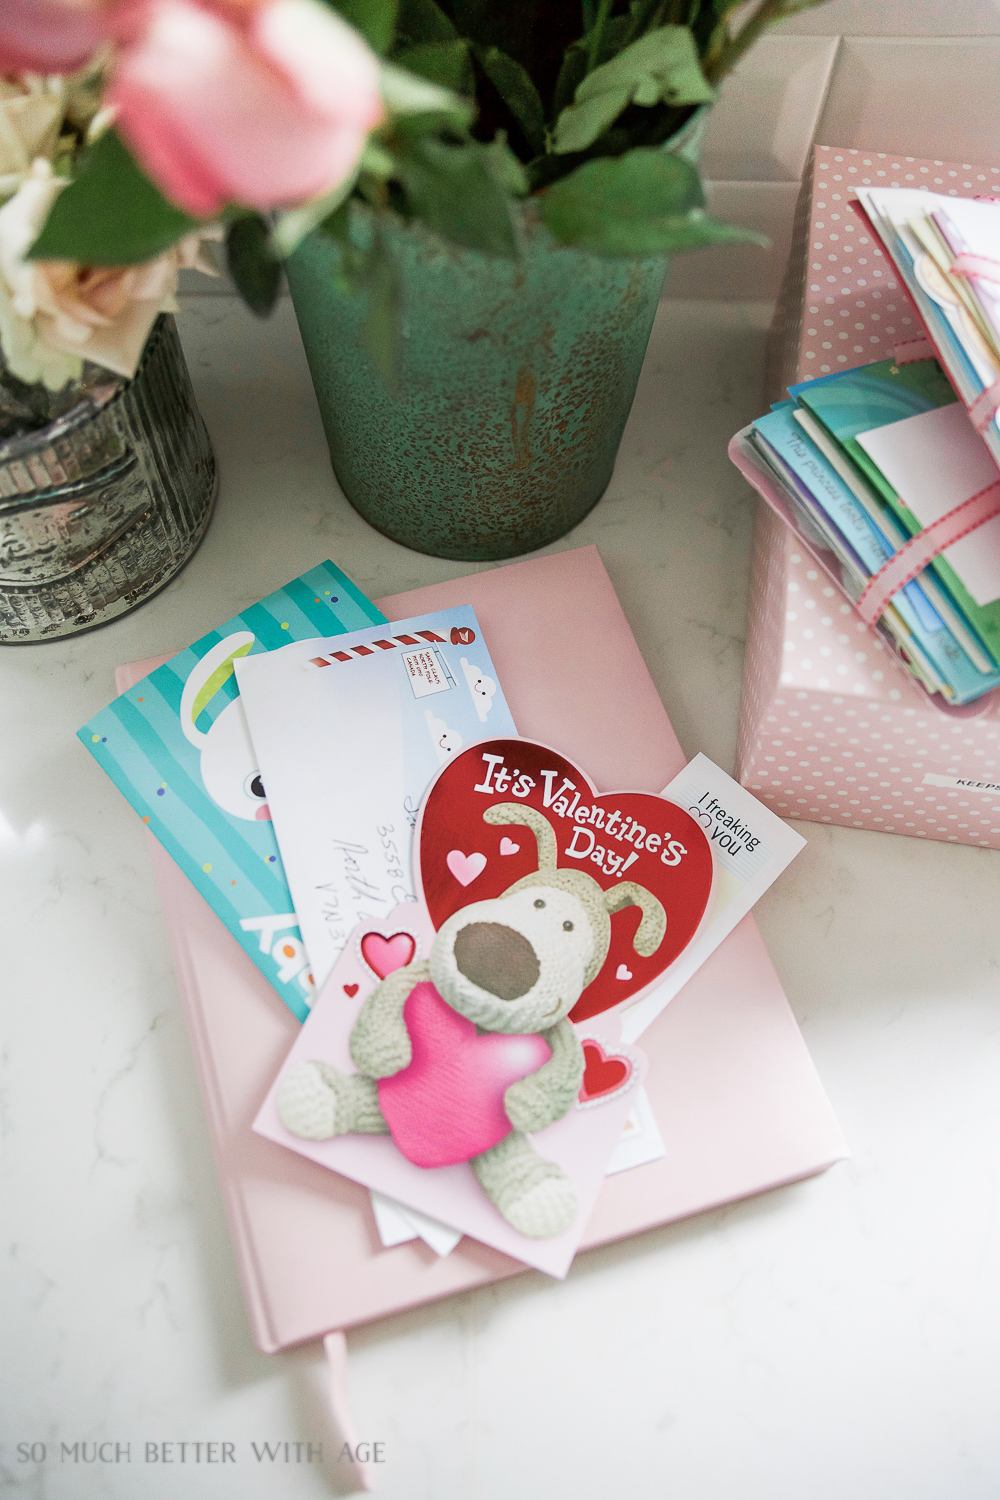 Organizing Kids Keepsakes (Birthday Cards) Printable/pretty cards with flowers - So Much Better With Age